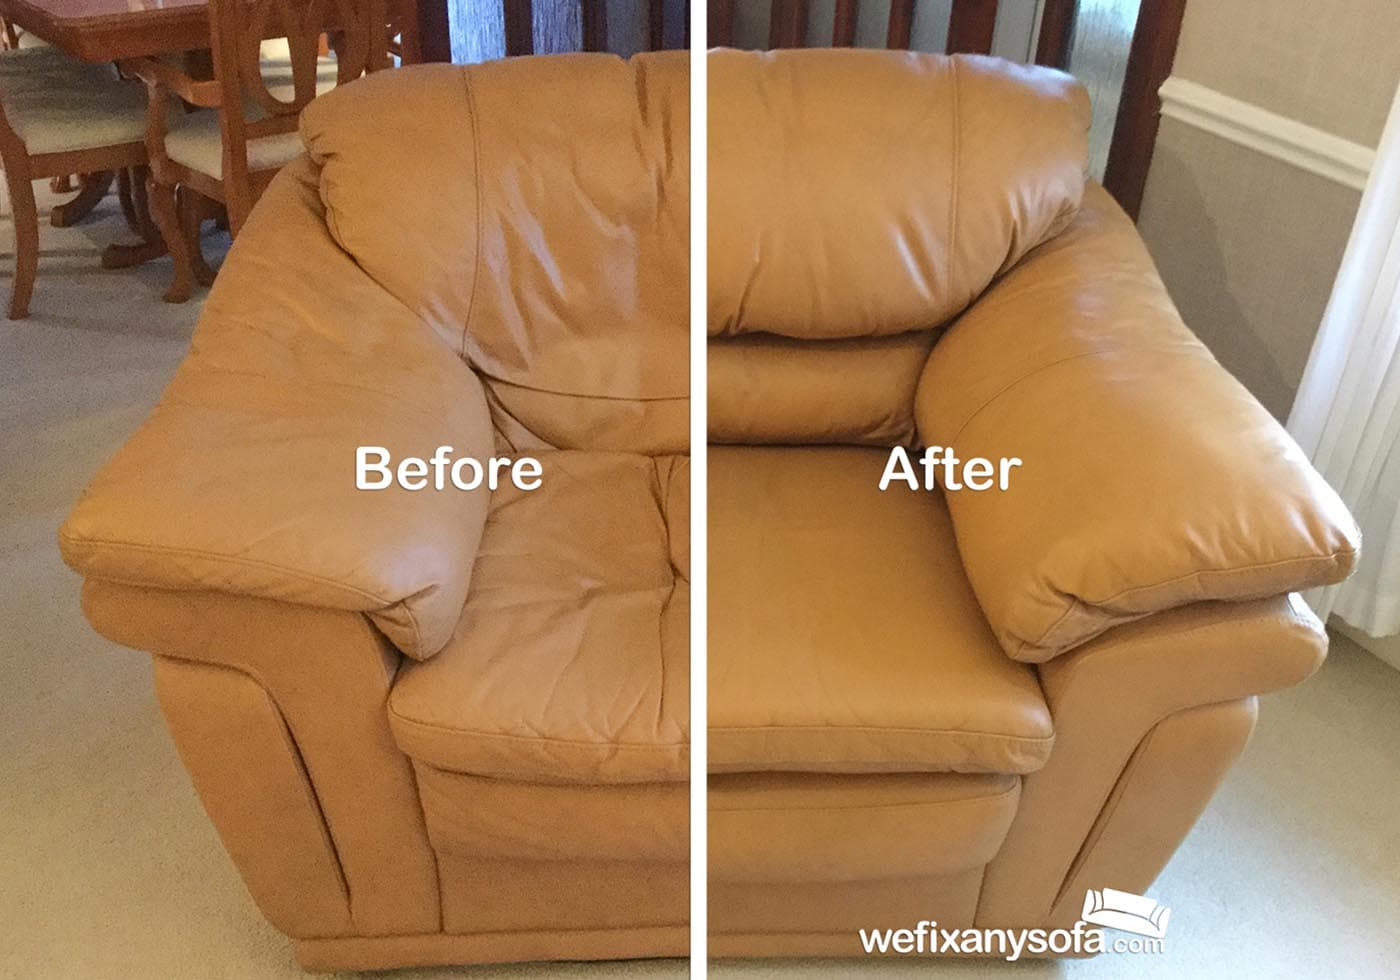 armchair with new cushion filling